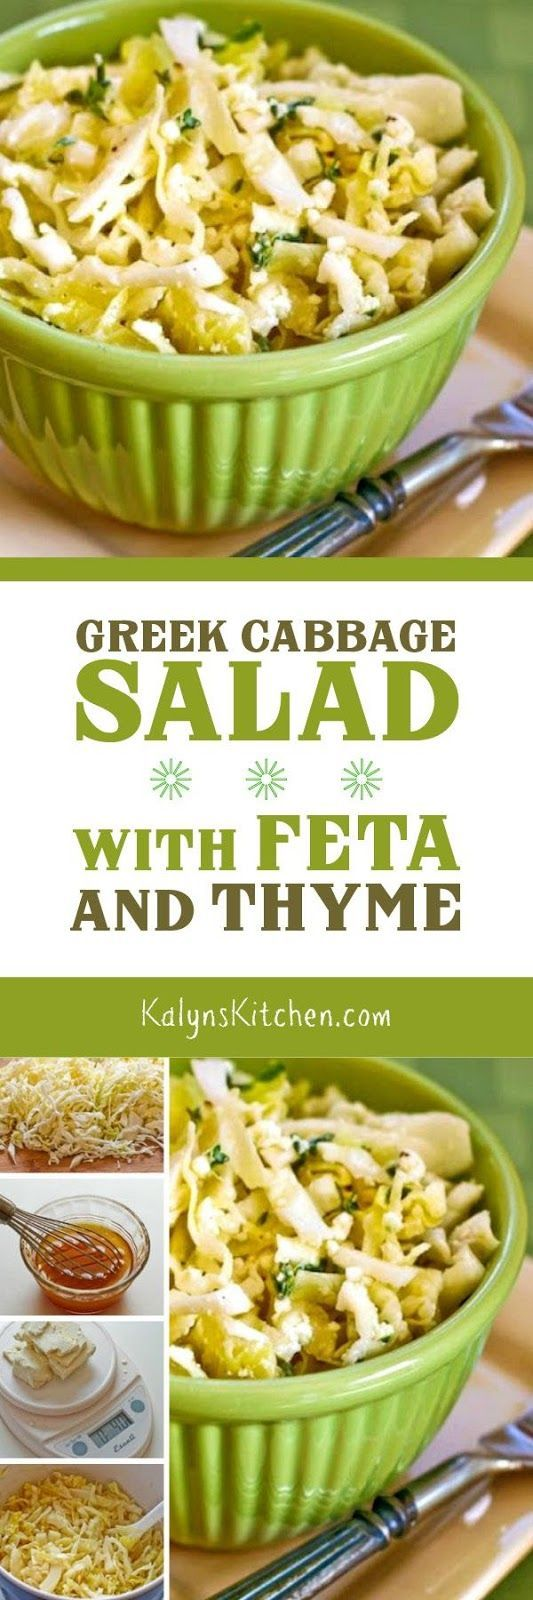 This delicious Greek Cabbage Salad with Feta and Thyme is tasty any time of year, and this salad is low-carb, low-glycemic, Keto, meatless, and South Beach Diet friendly.